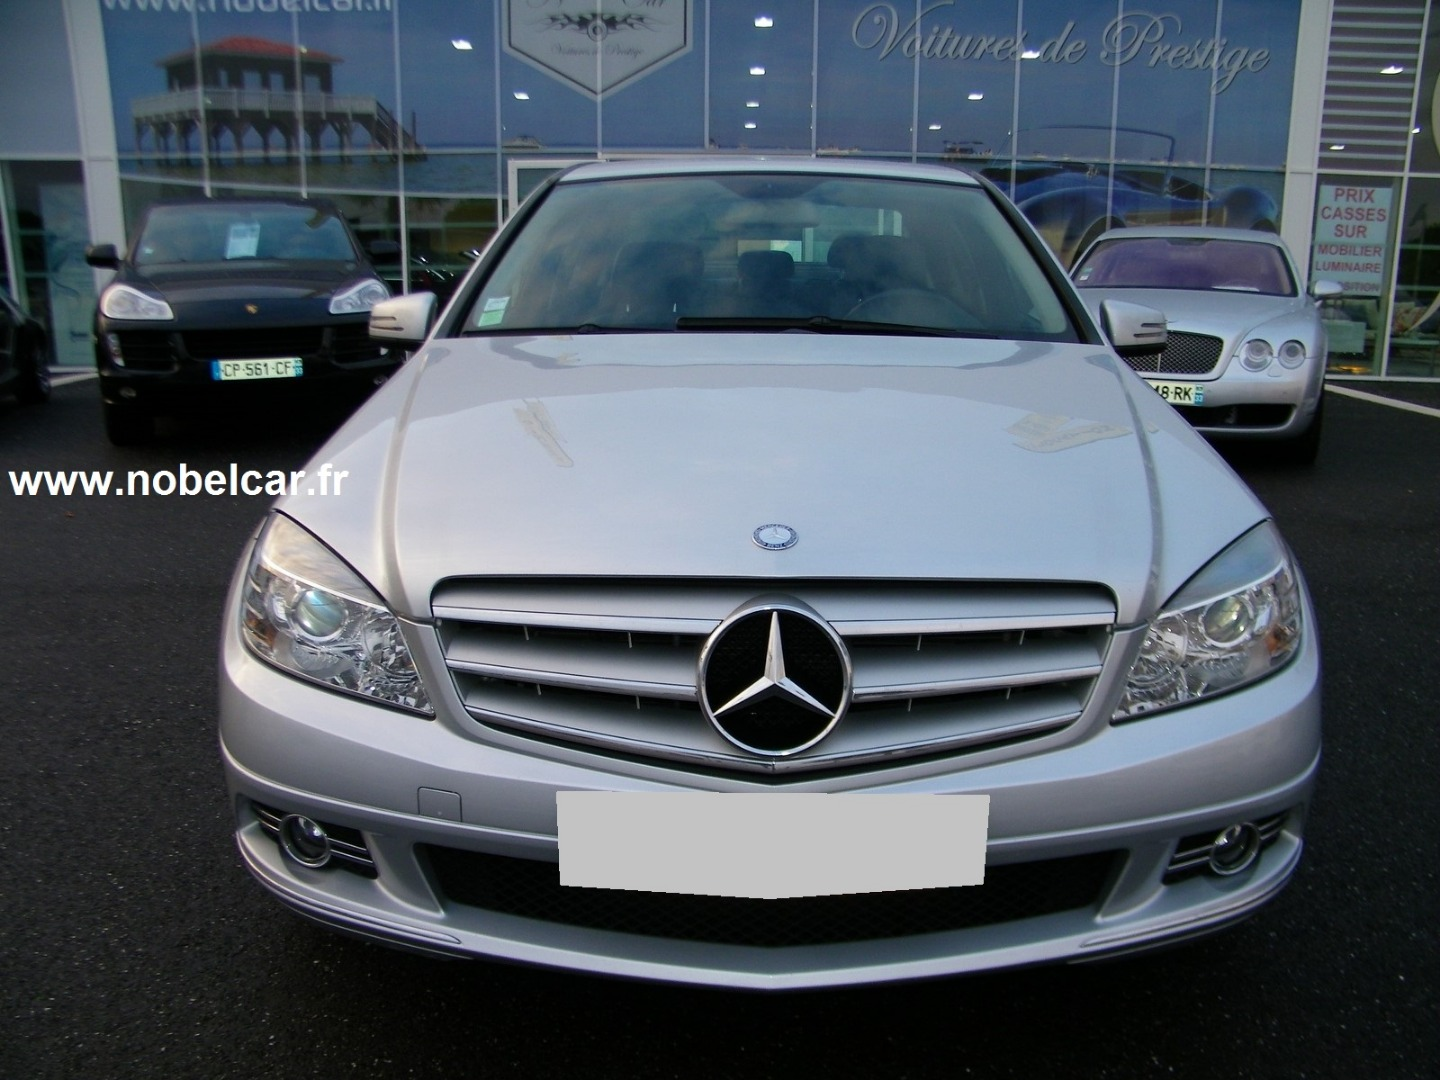 Mercedes Classe C 220 CDI AVANTGARDE d'occasion gironde 33